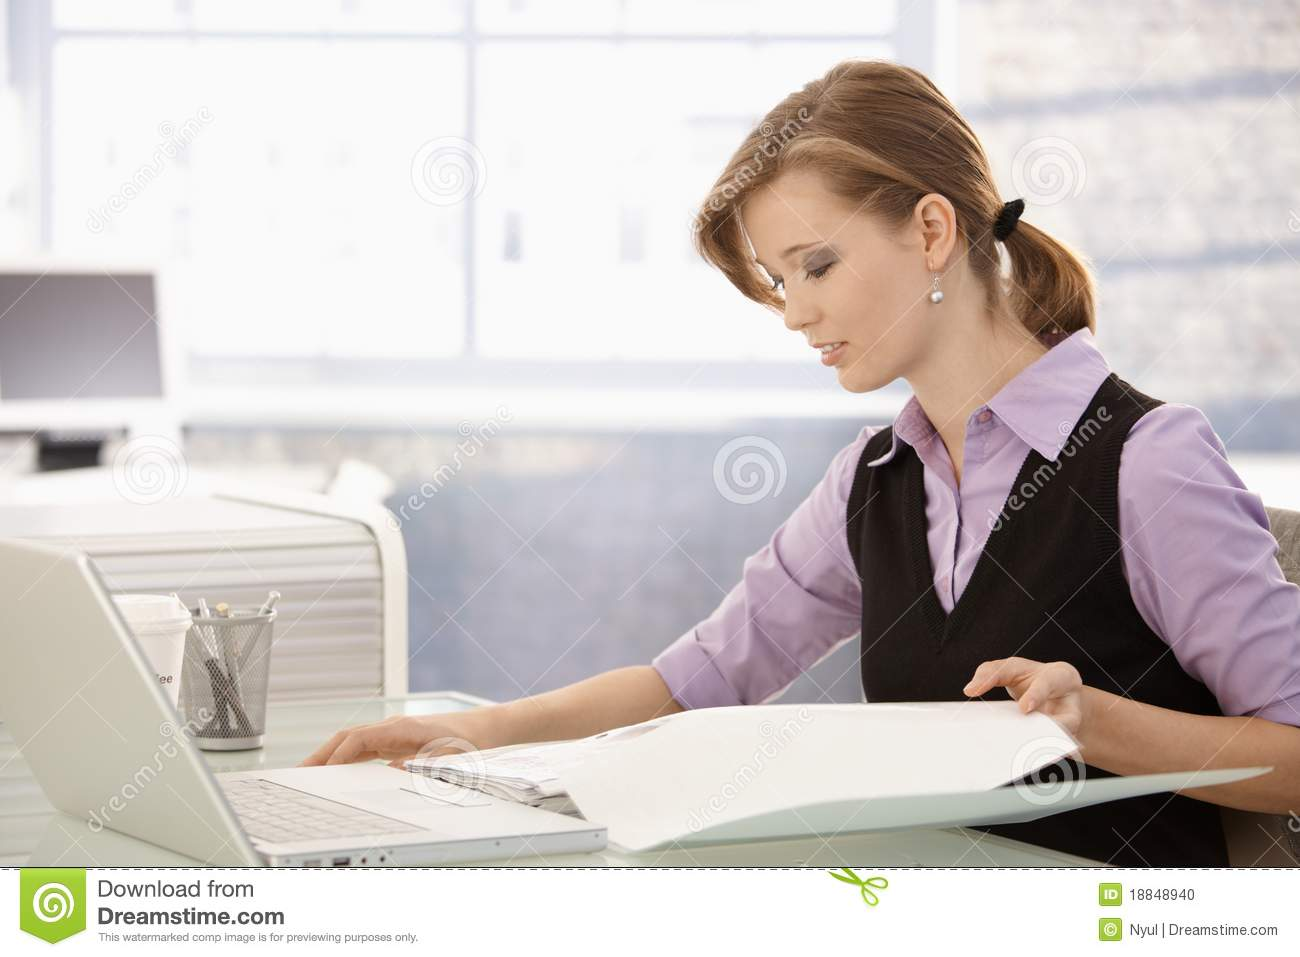 Office Worker Doing Paperwork At Desk Stock Photo - Image: 18848940